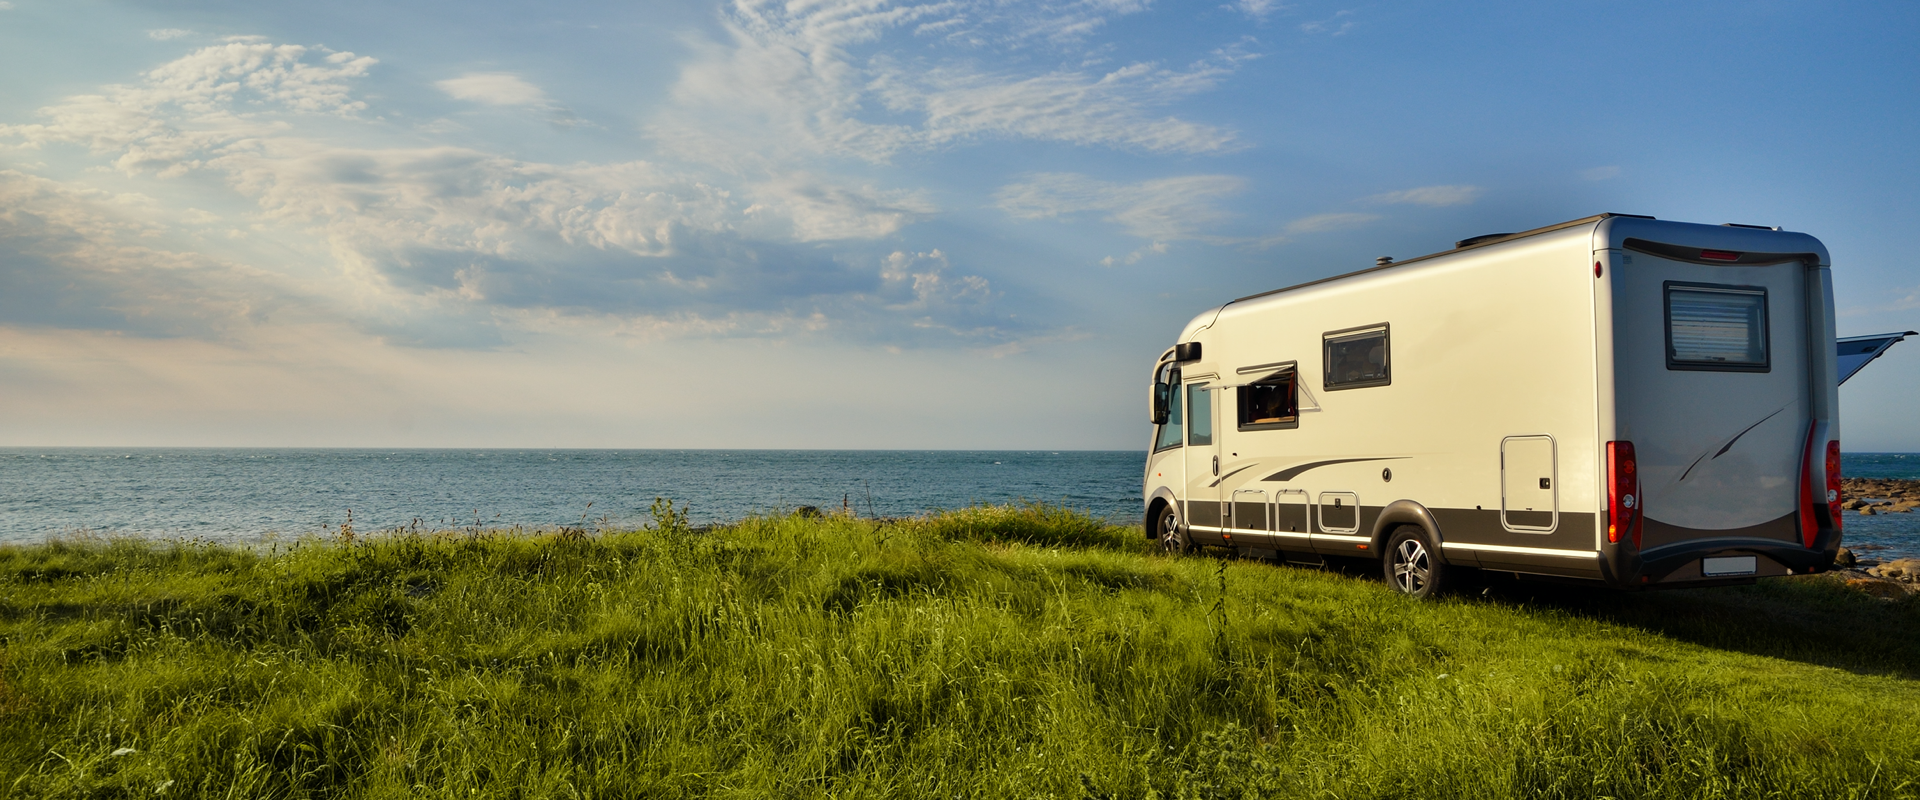 COVID Travel Guide: RV Road Trip